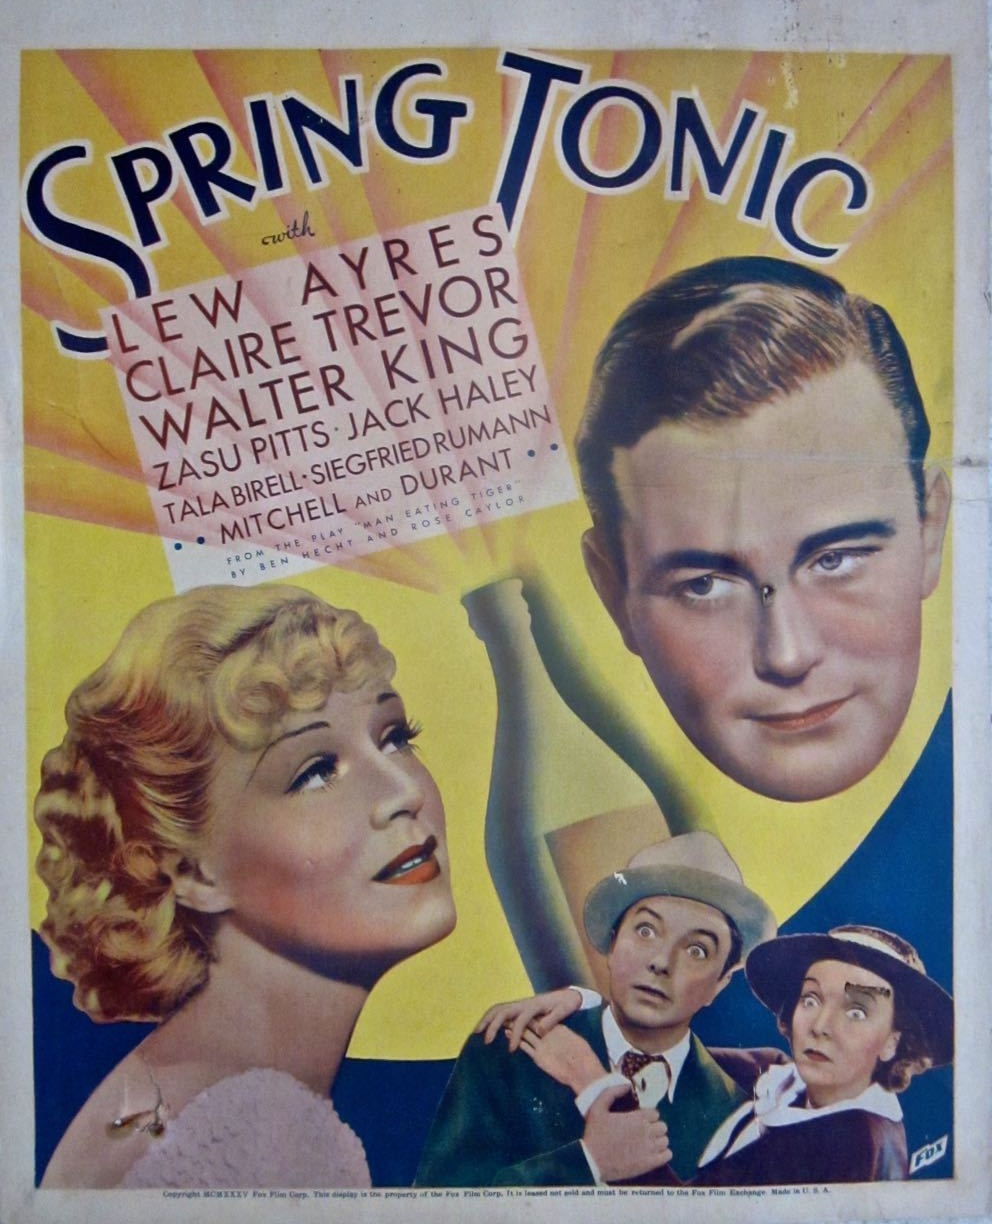 Lew Ayres, Jack Haley, Zasu Pitts, and Claire Trevor in Spring Tonic (1935)